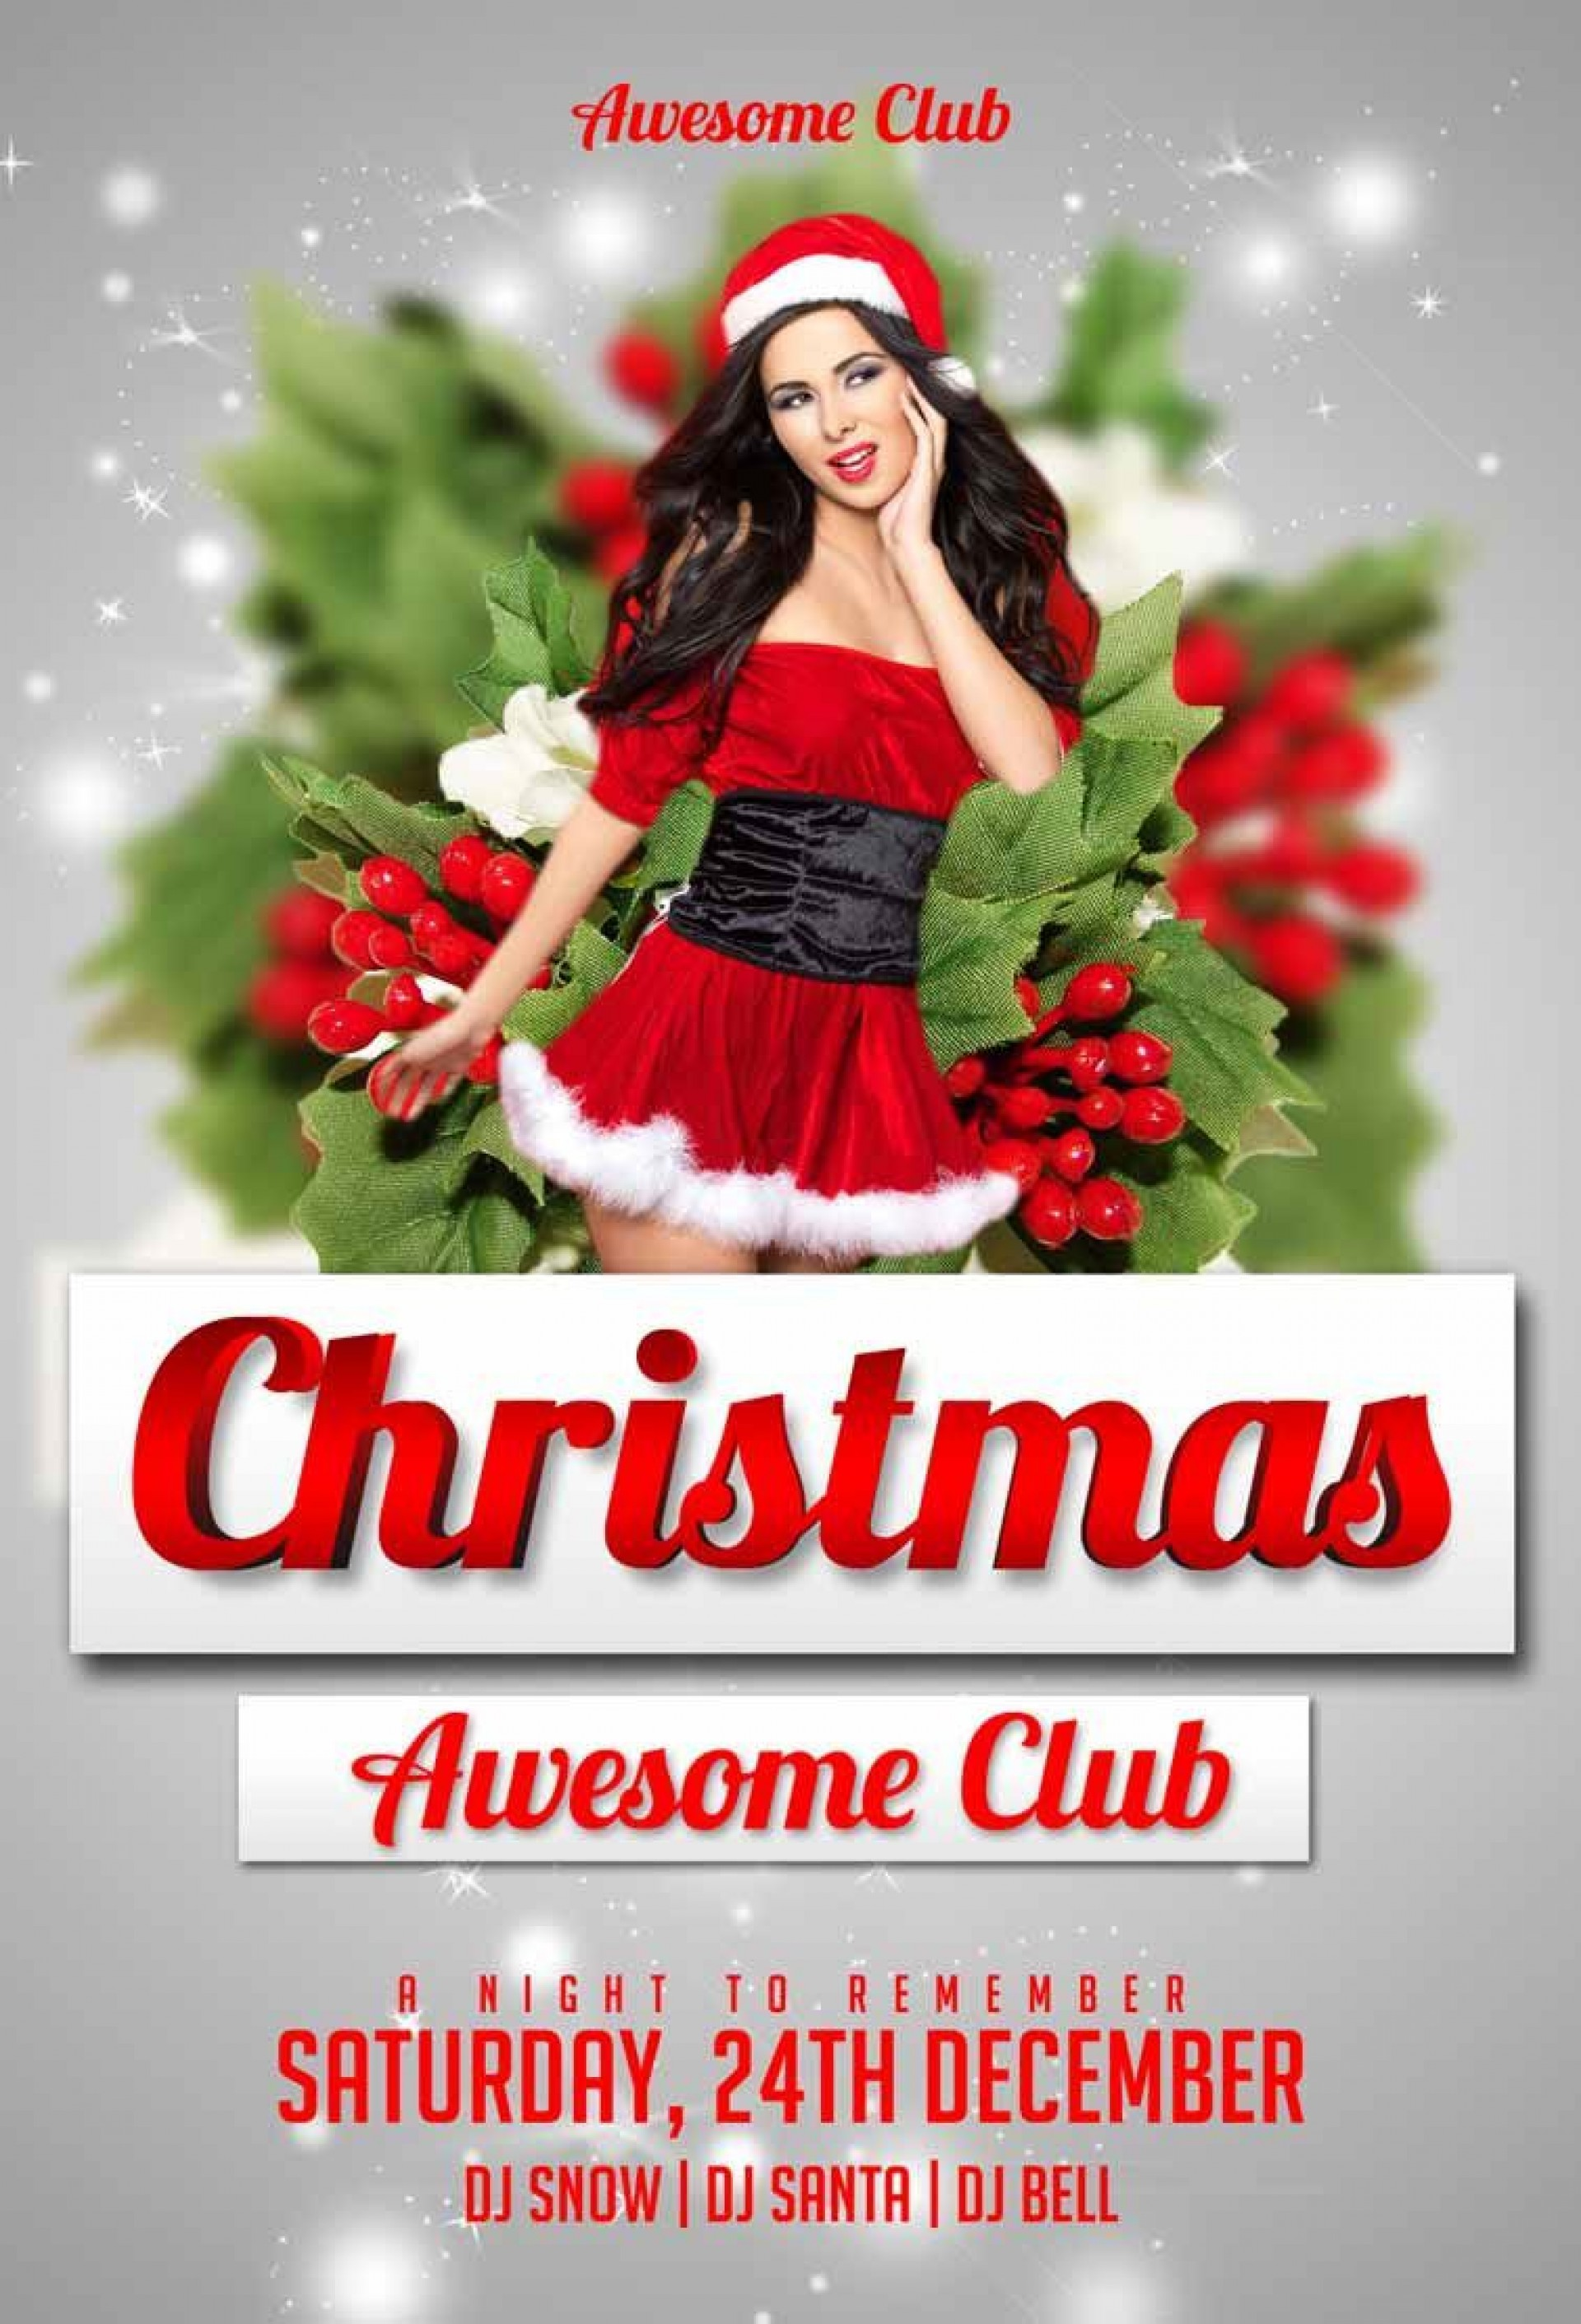 007 Incredible Christma Flyer Template Free Highest Quality  Party Invitation Psd Download1920